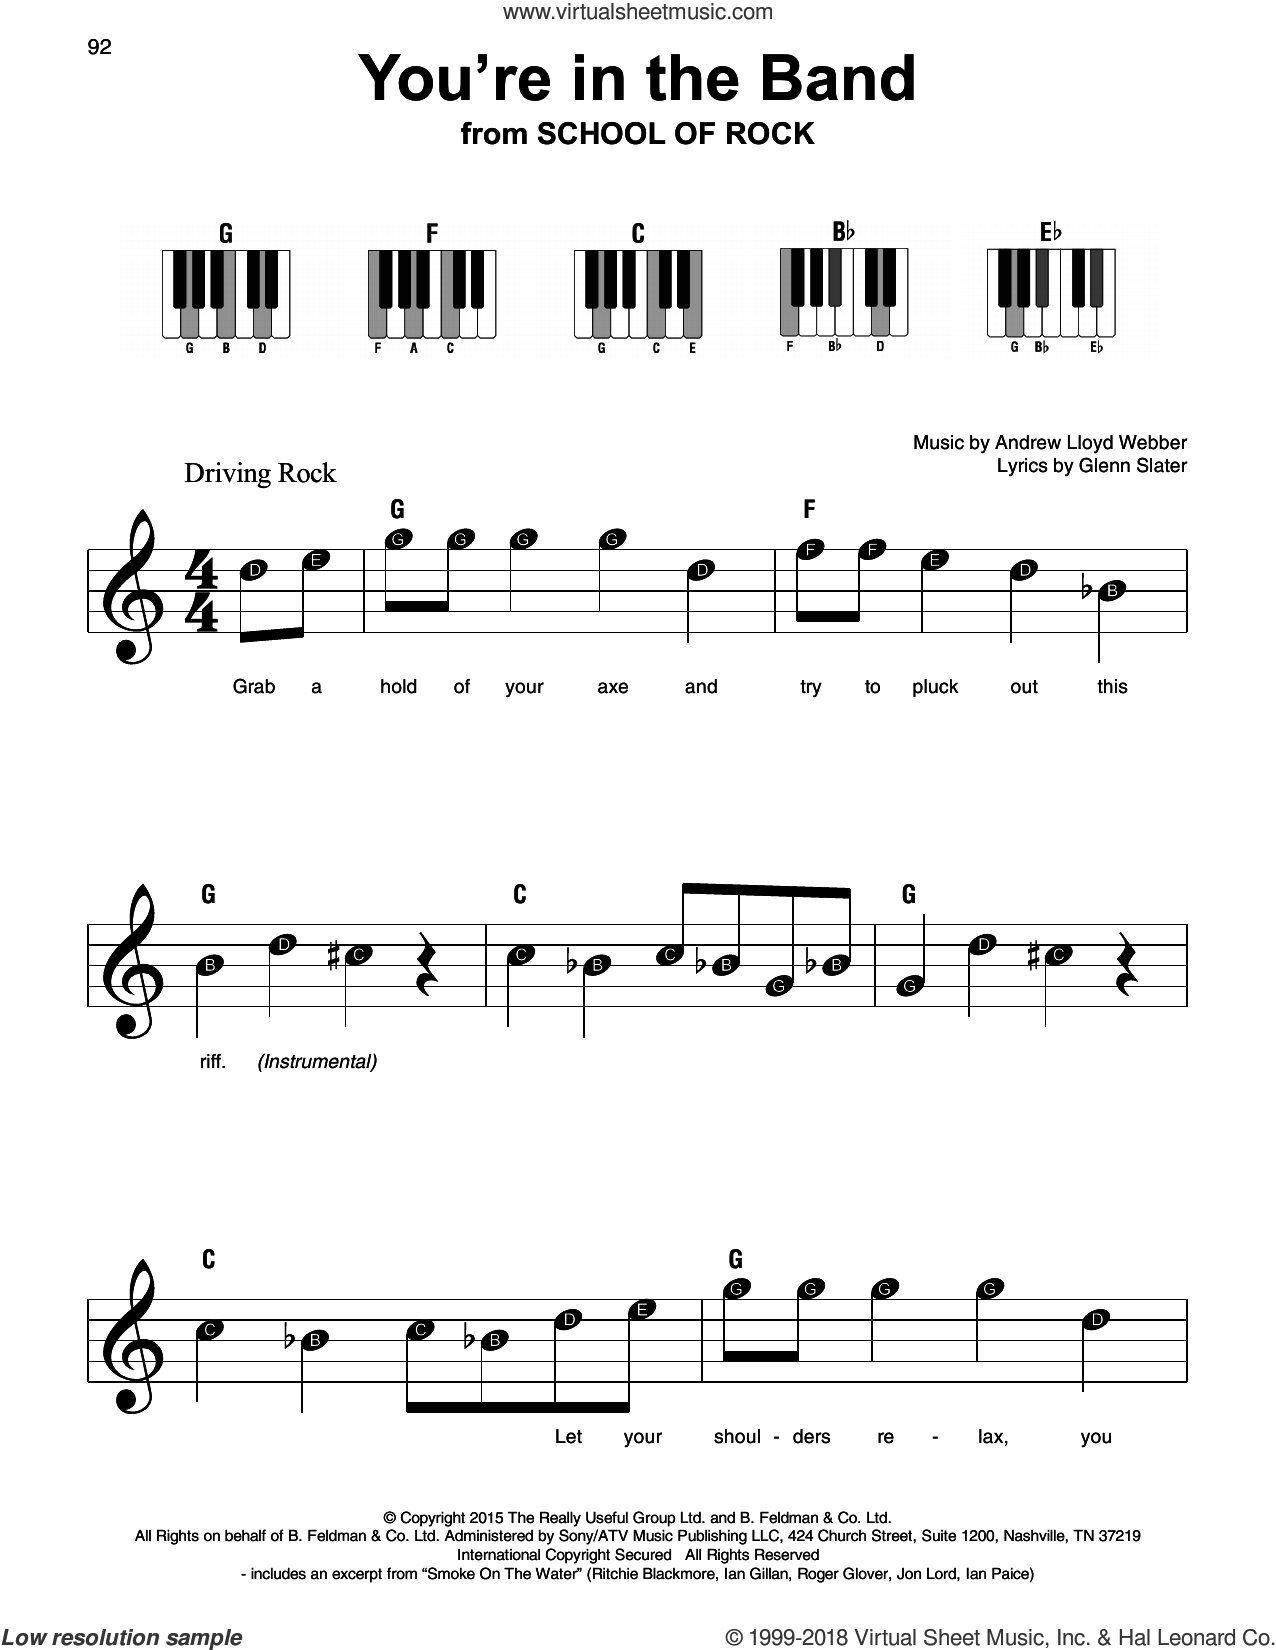 You're In The Band (from School of Rock: The Musical) sheet music for piano solo by Andrew Lloyd Webber and Glenn Slater, beginner skill level